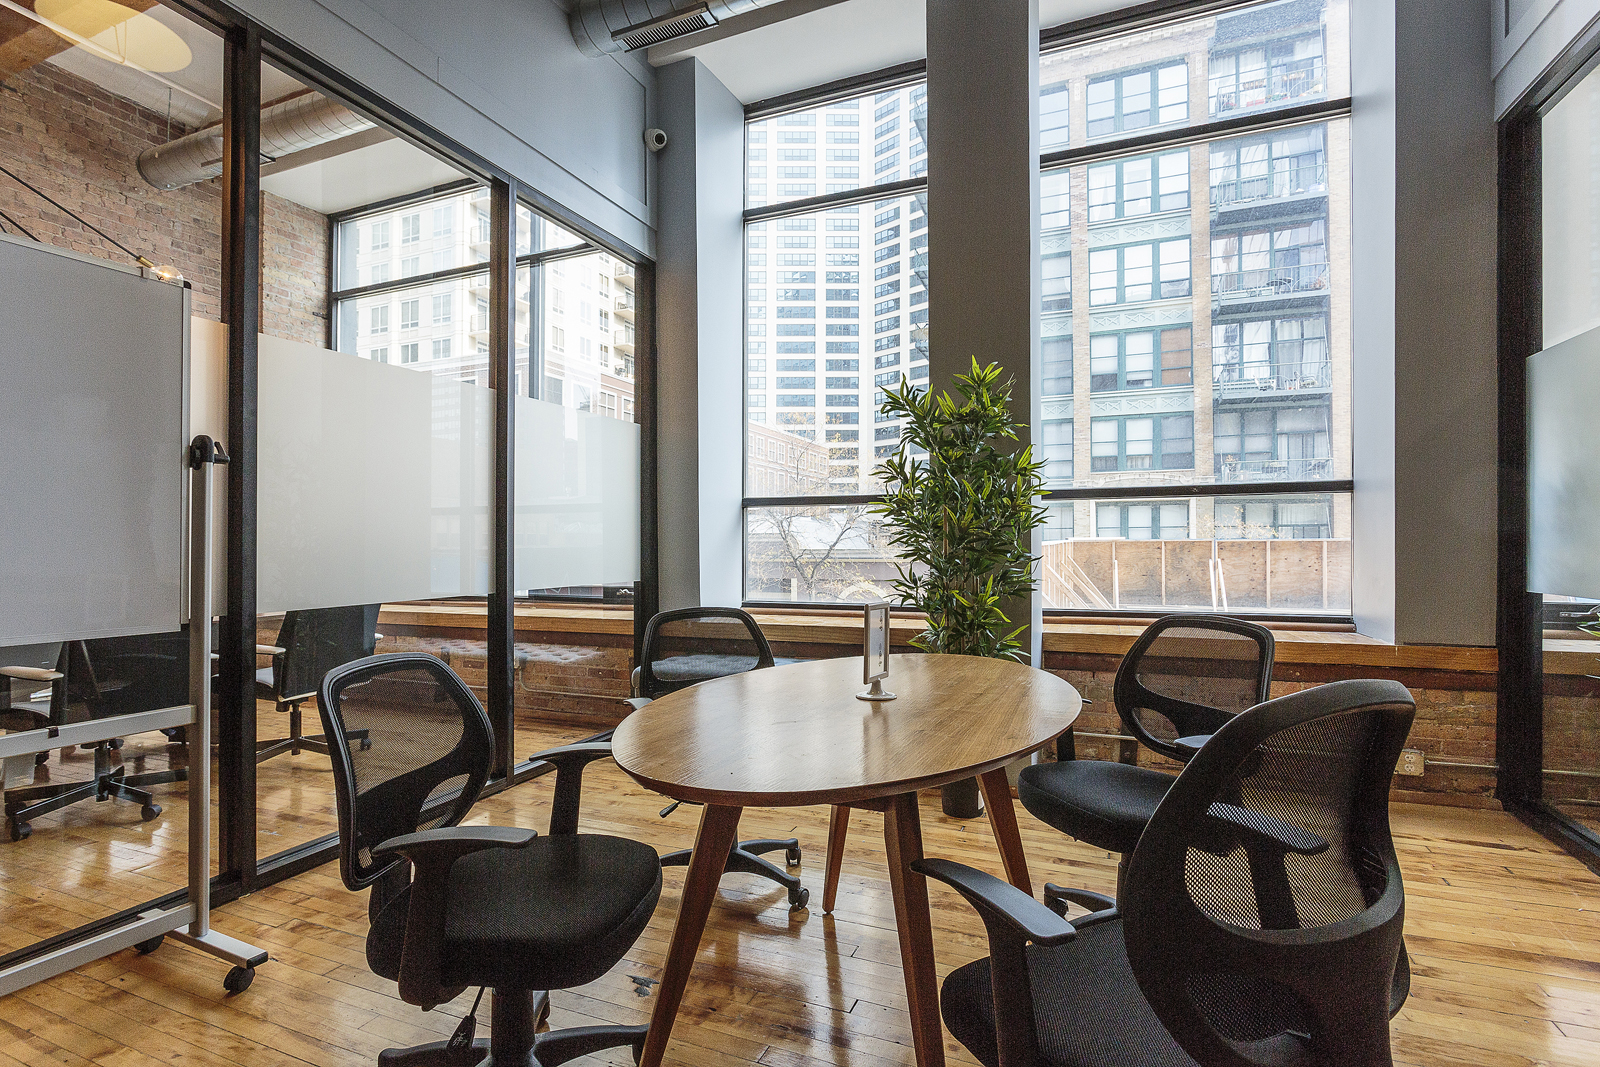 Sit at any community desk.   INCLUDES:  - 24/7 Access.           - 8 Conference Room credits